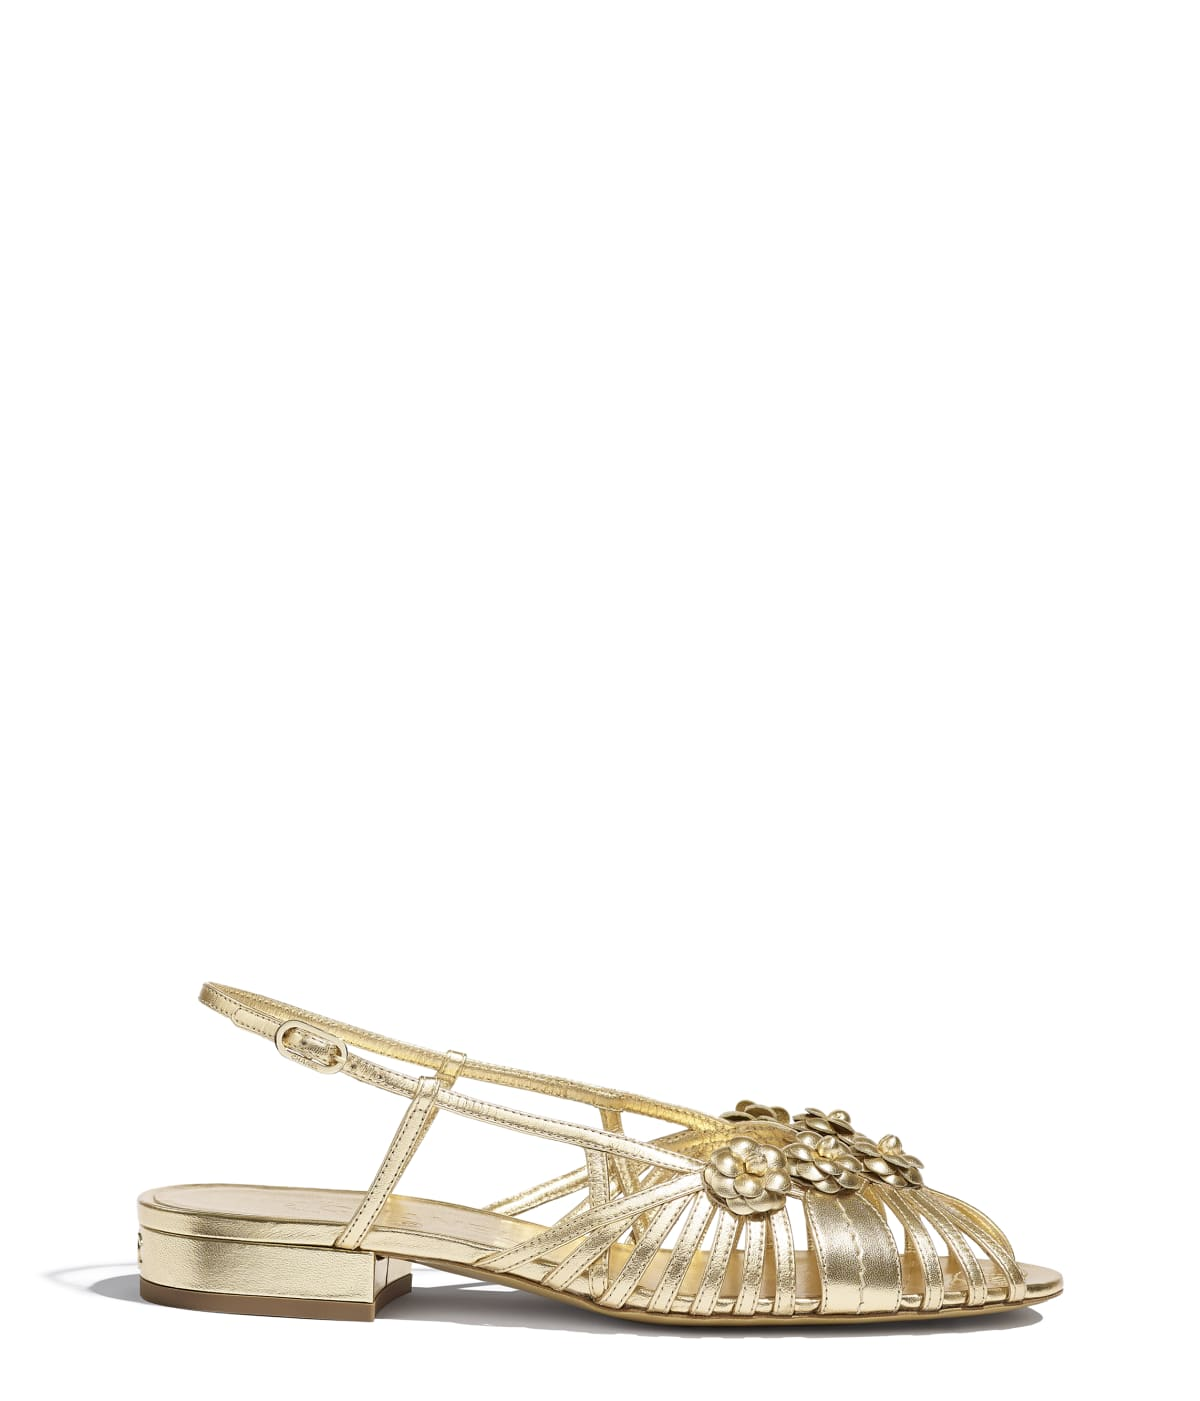 Shoes - CHANEL